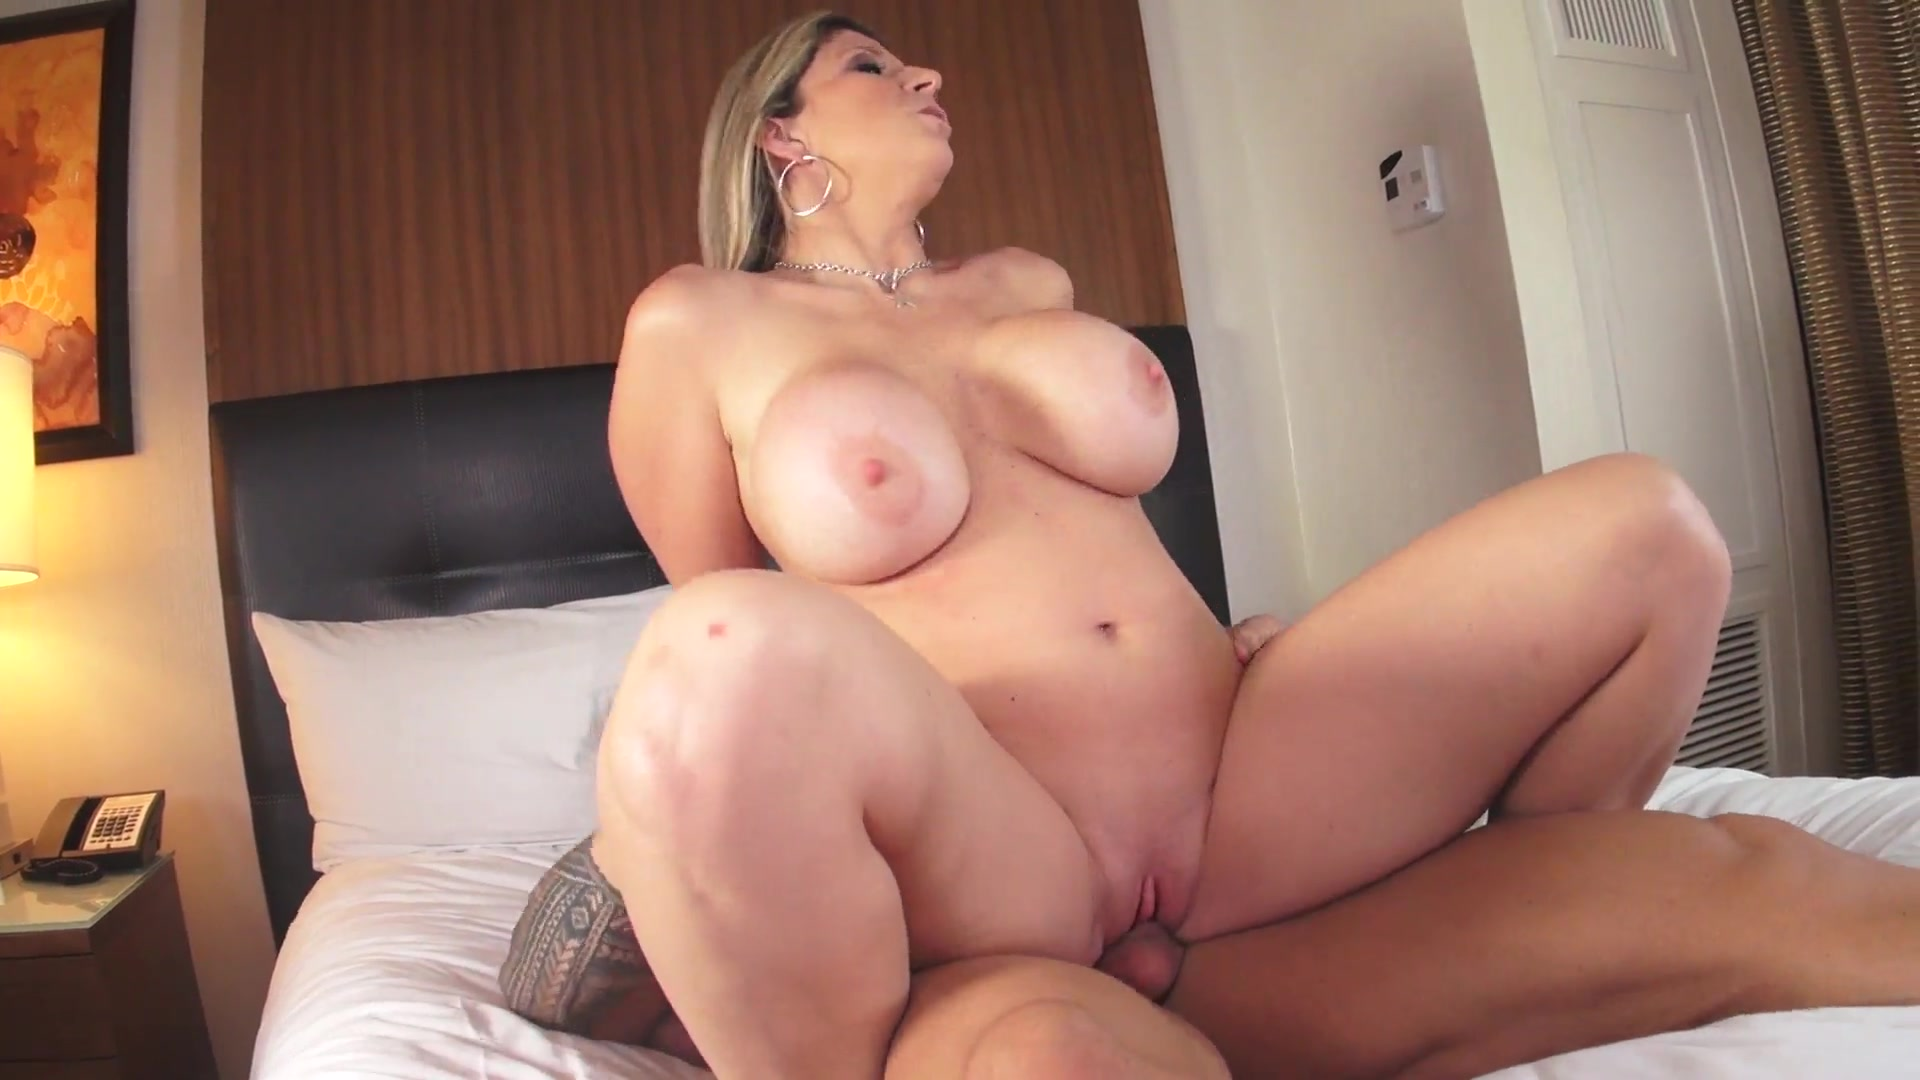 Free Download Watch Hot Busty Milf Sara Jay Is Ready To Squirt Just For You Porn Images